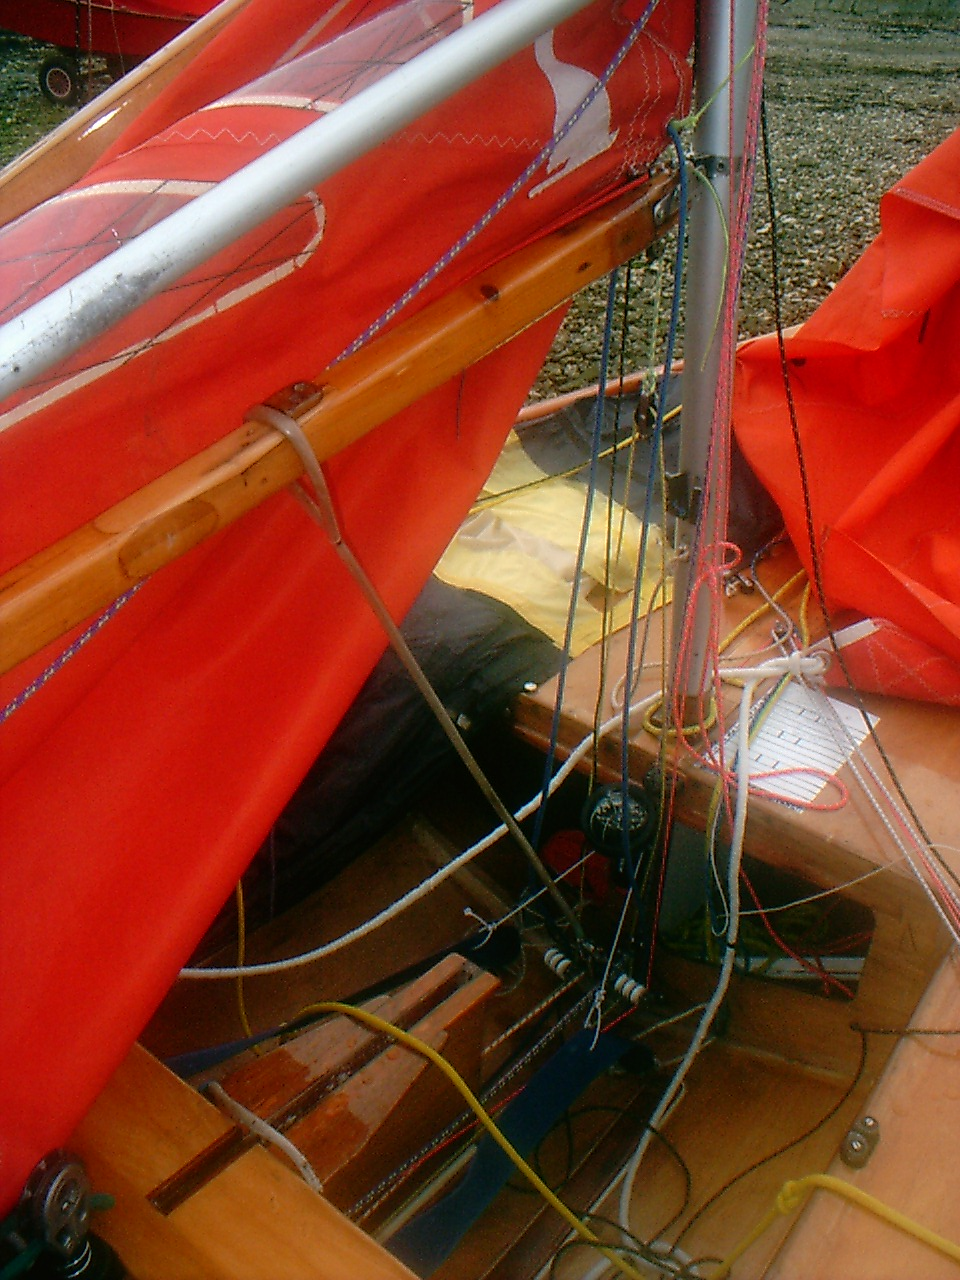 A wooden boat with sails lowered and the camera pointing towards the bottom of the stowage bulkhead